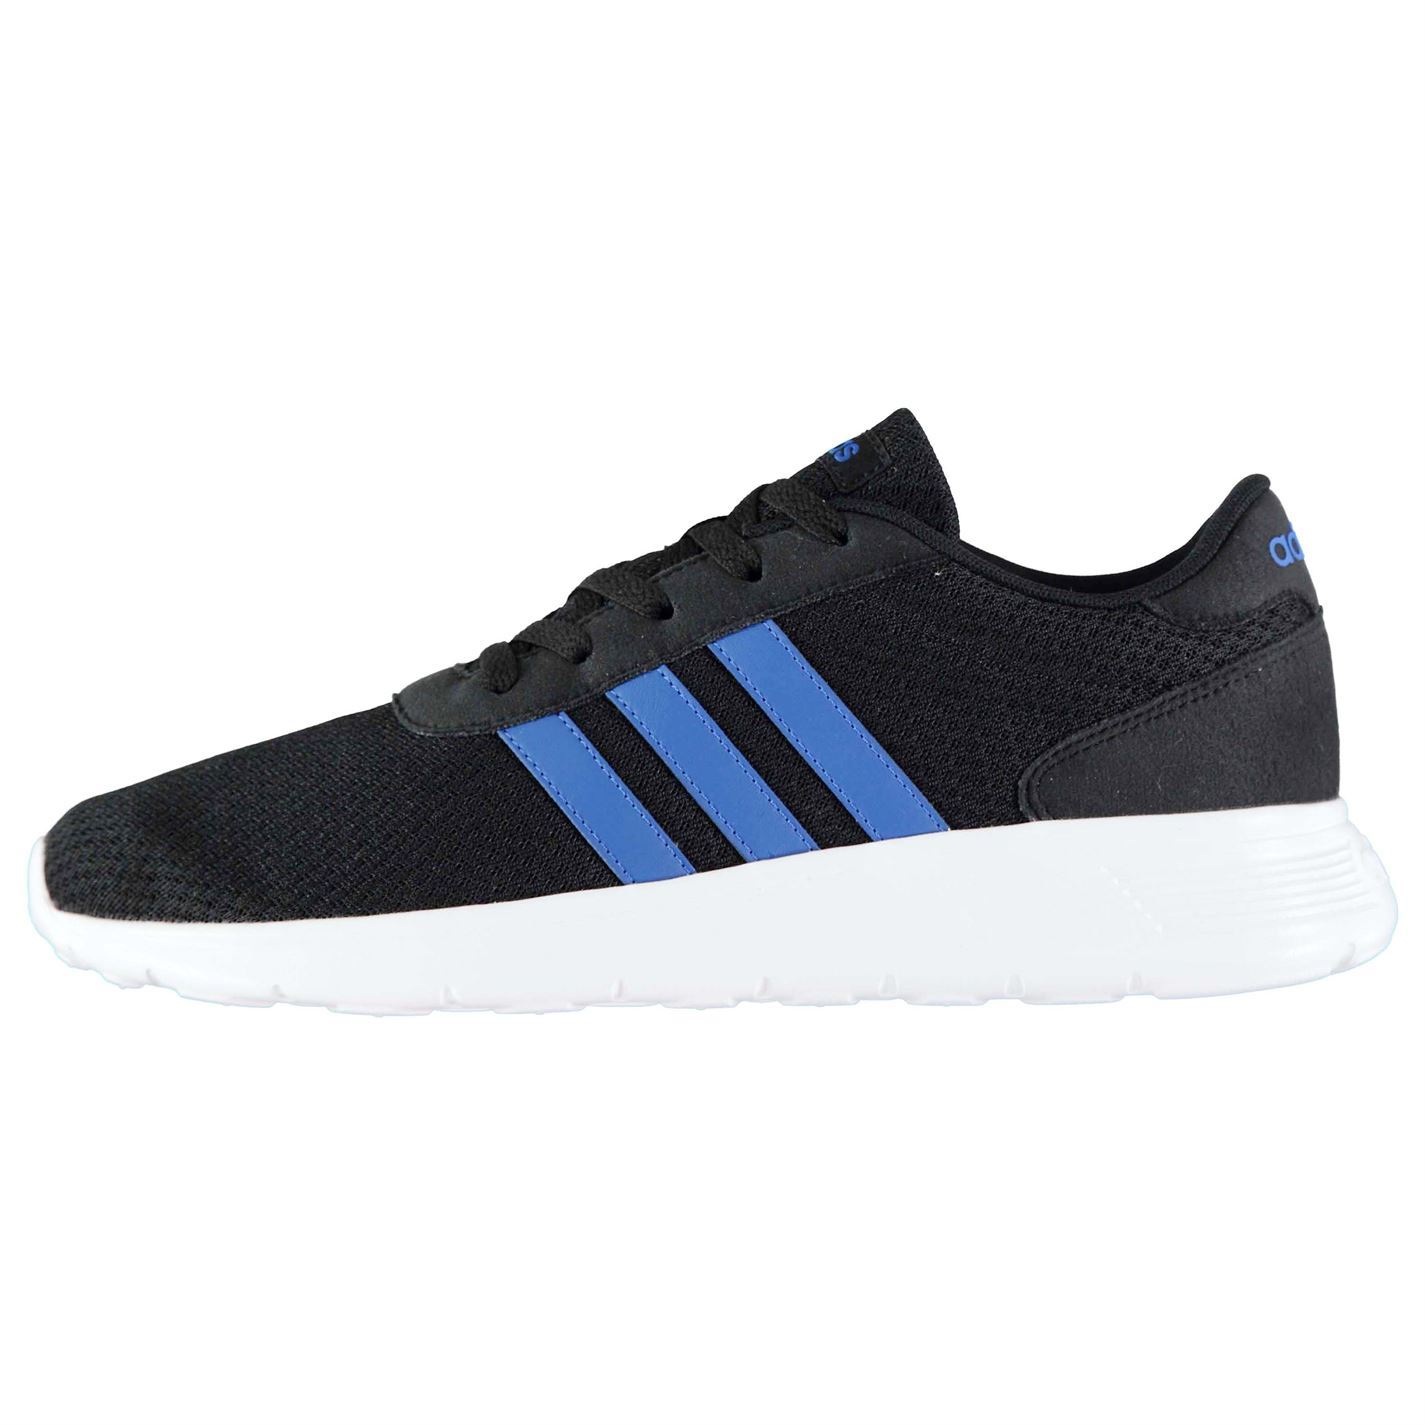 adidas Lite Racer Trainers Mens Black Blue White Athletic Sneakers Shoes af973179e